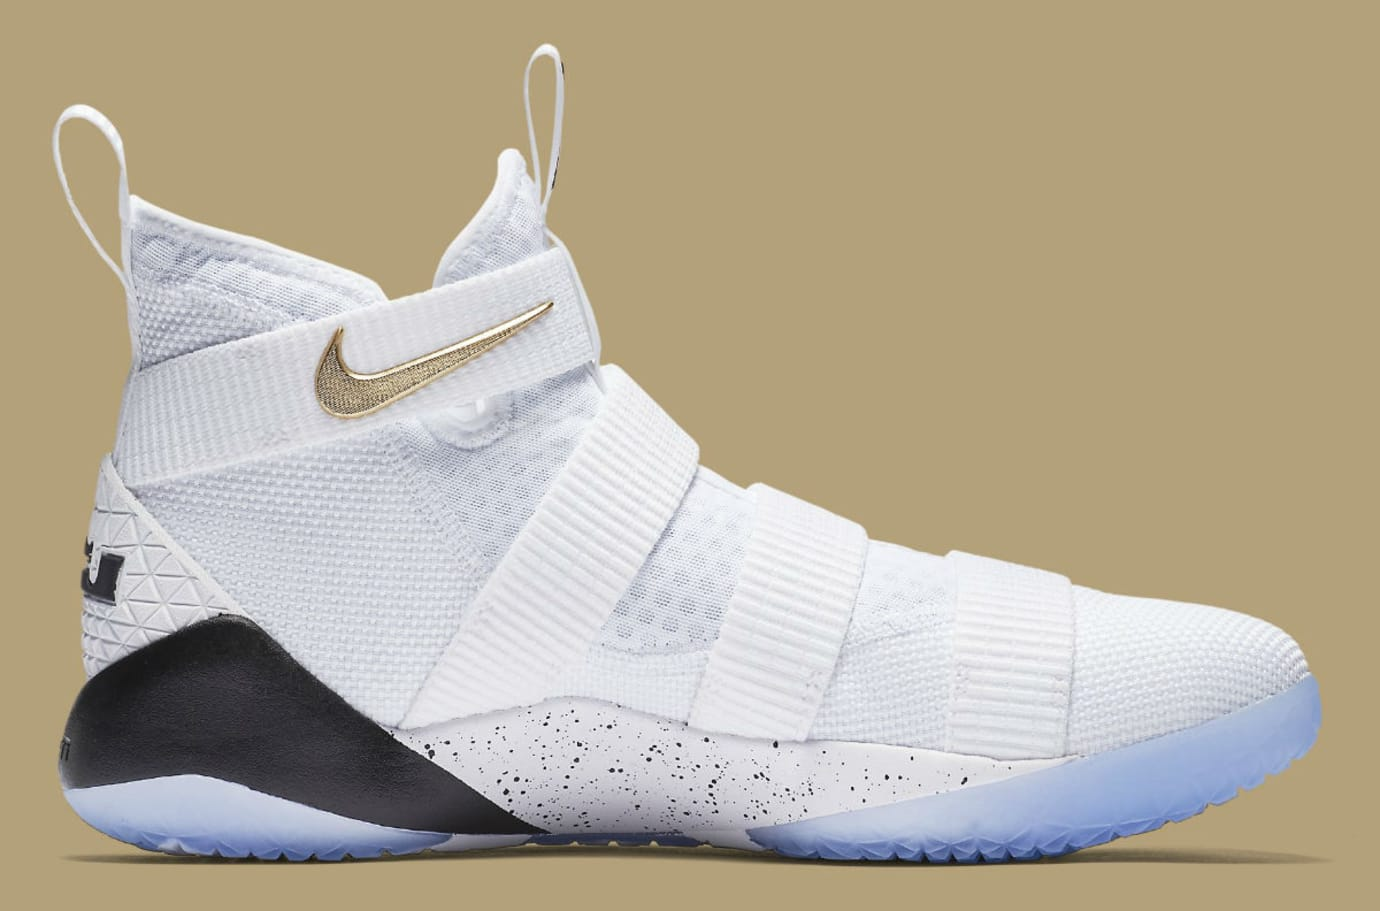 low priced 5e601 6a607 Nike LeBron Soldier 11 White Gold Black Release Date Medial 897644-101